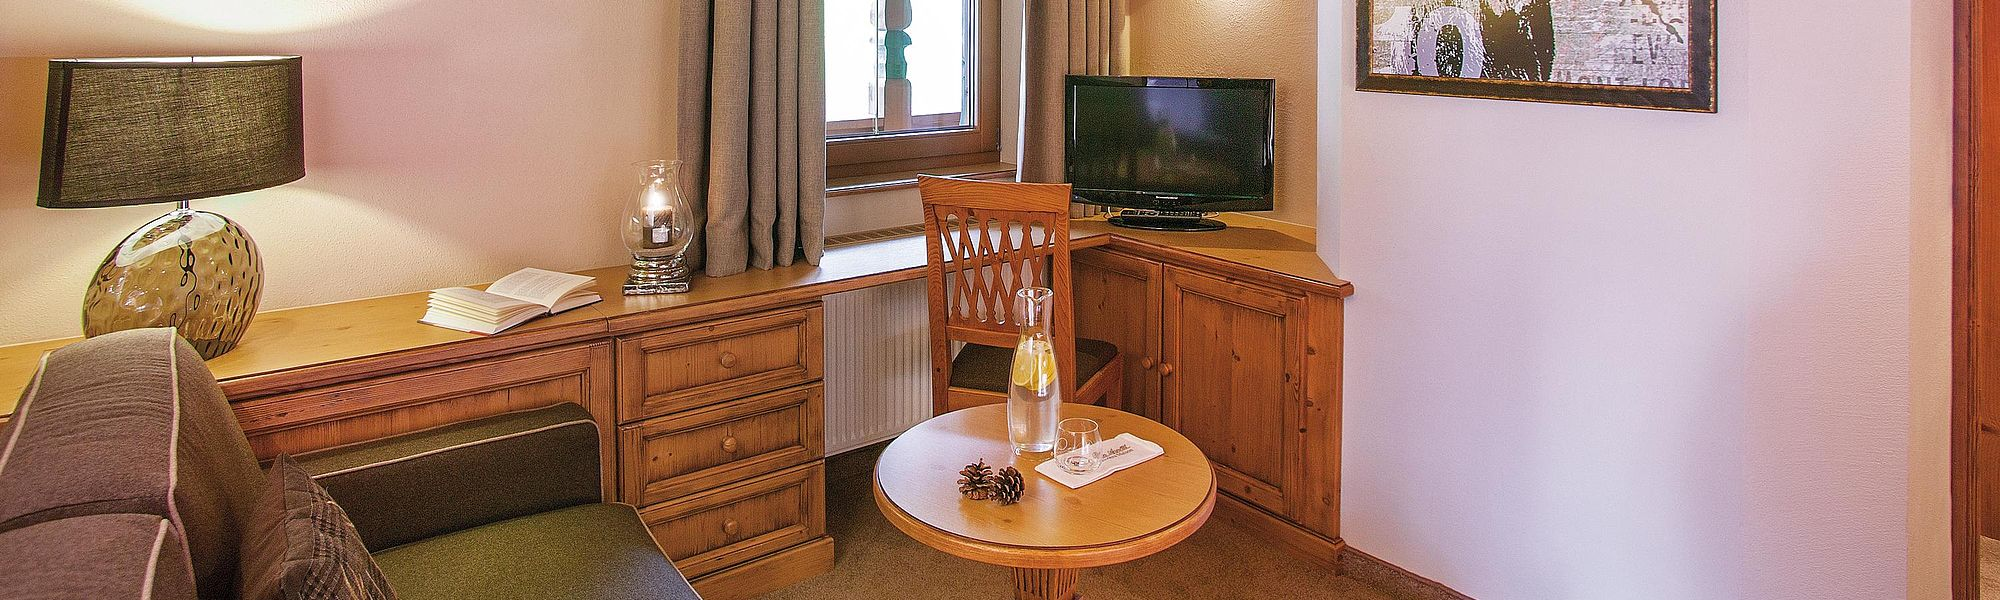 Luxury apartment for individual travelers, Zillertal